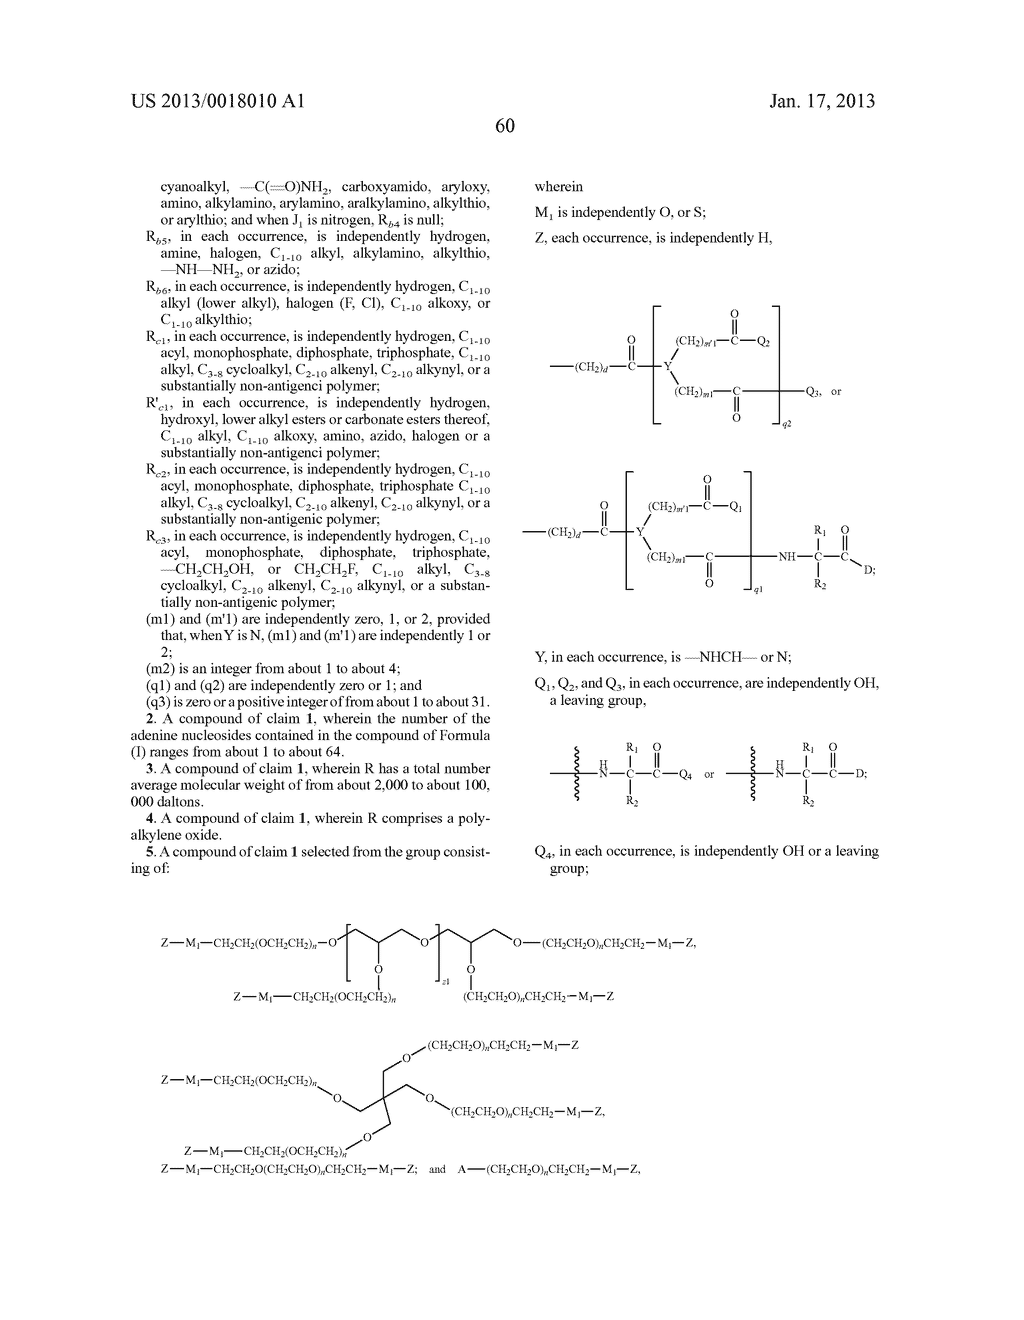 POLYMERIC CONJUGATES OF ADENINE NUCLEOSIDE ANALOGS - diagram, schematic, and image 79